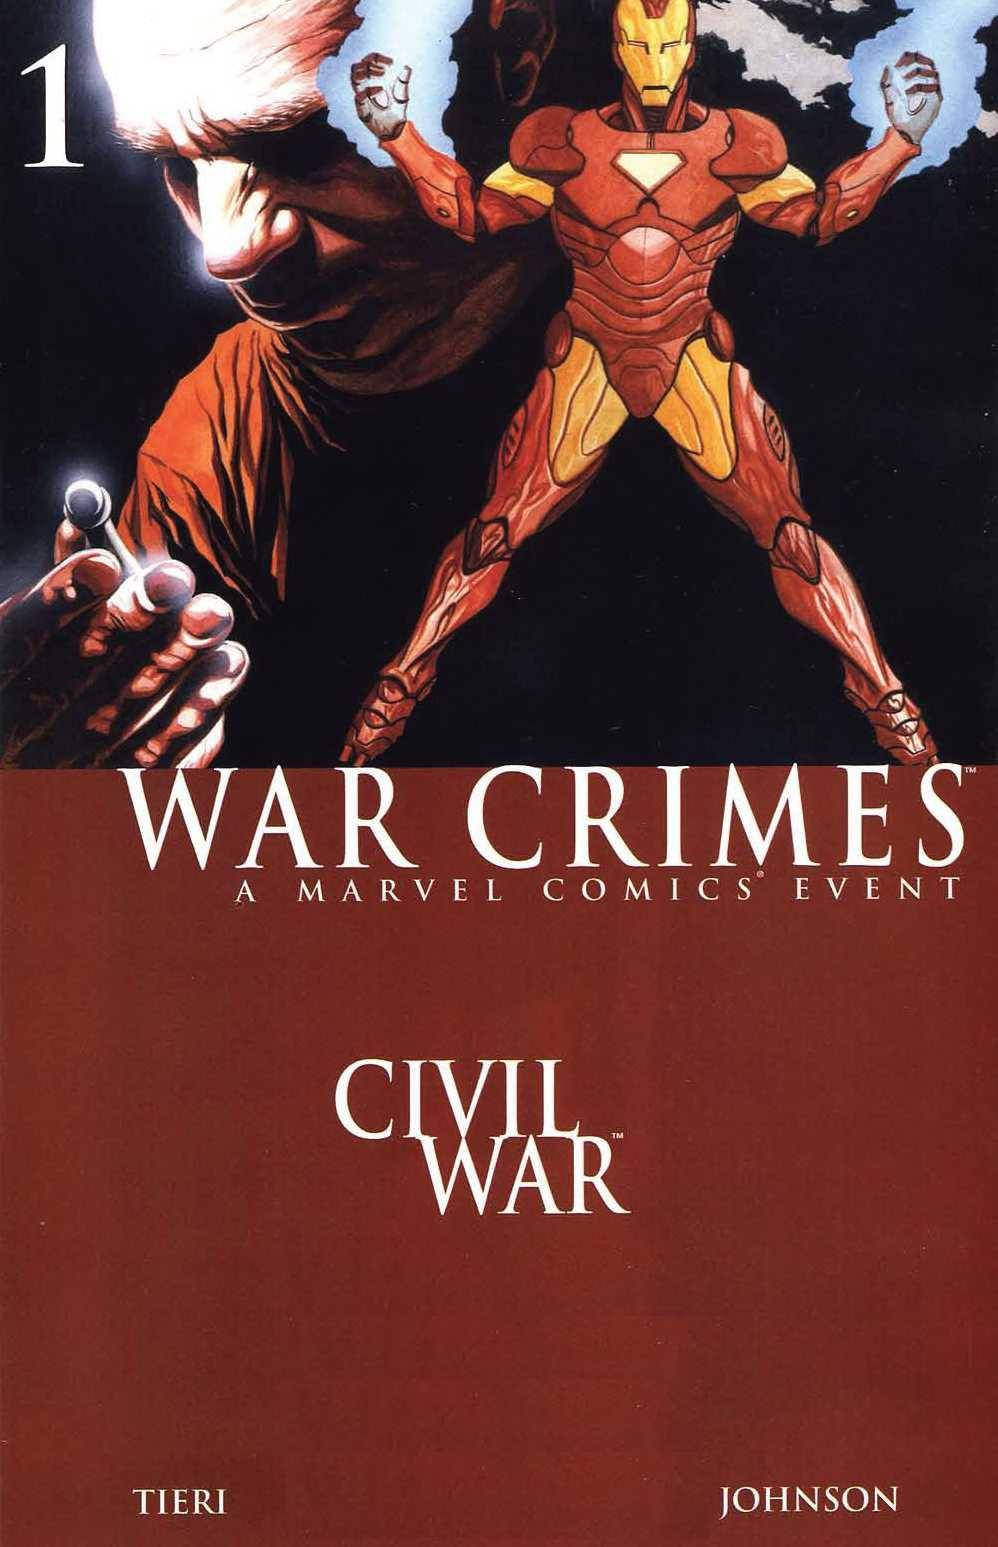 A Blasty From The Pasty [353 of 558] 082 Civil War - War Crimes Blasty-DCP